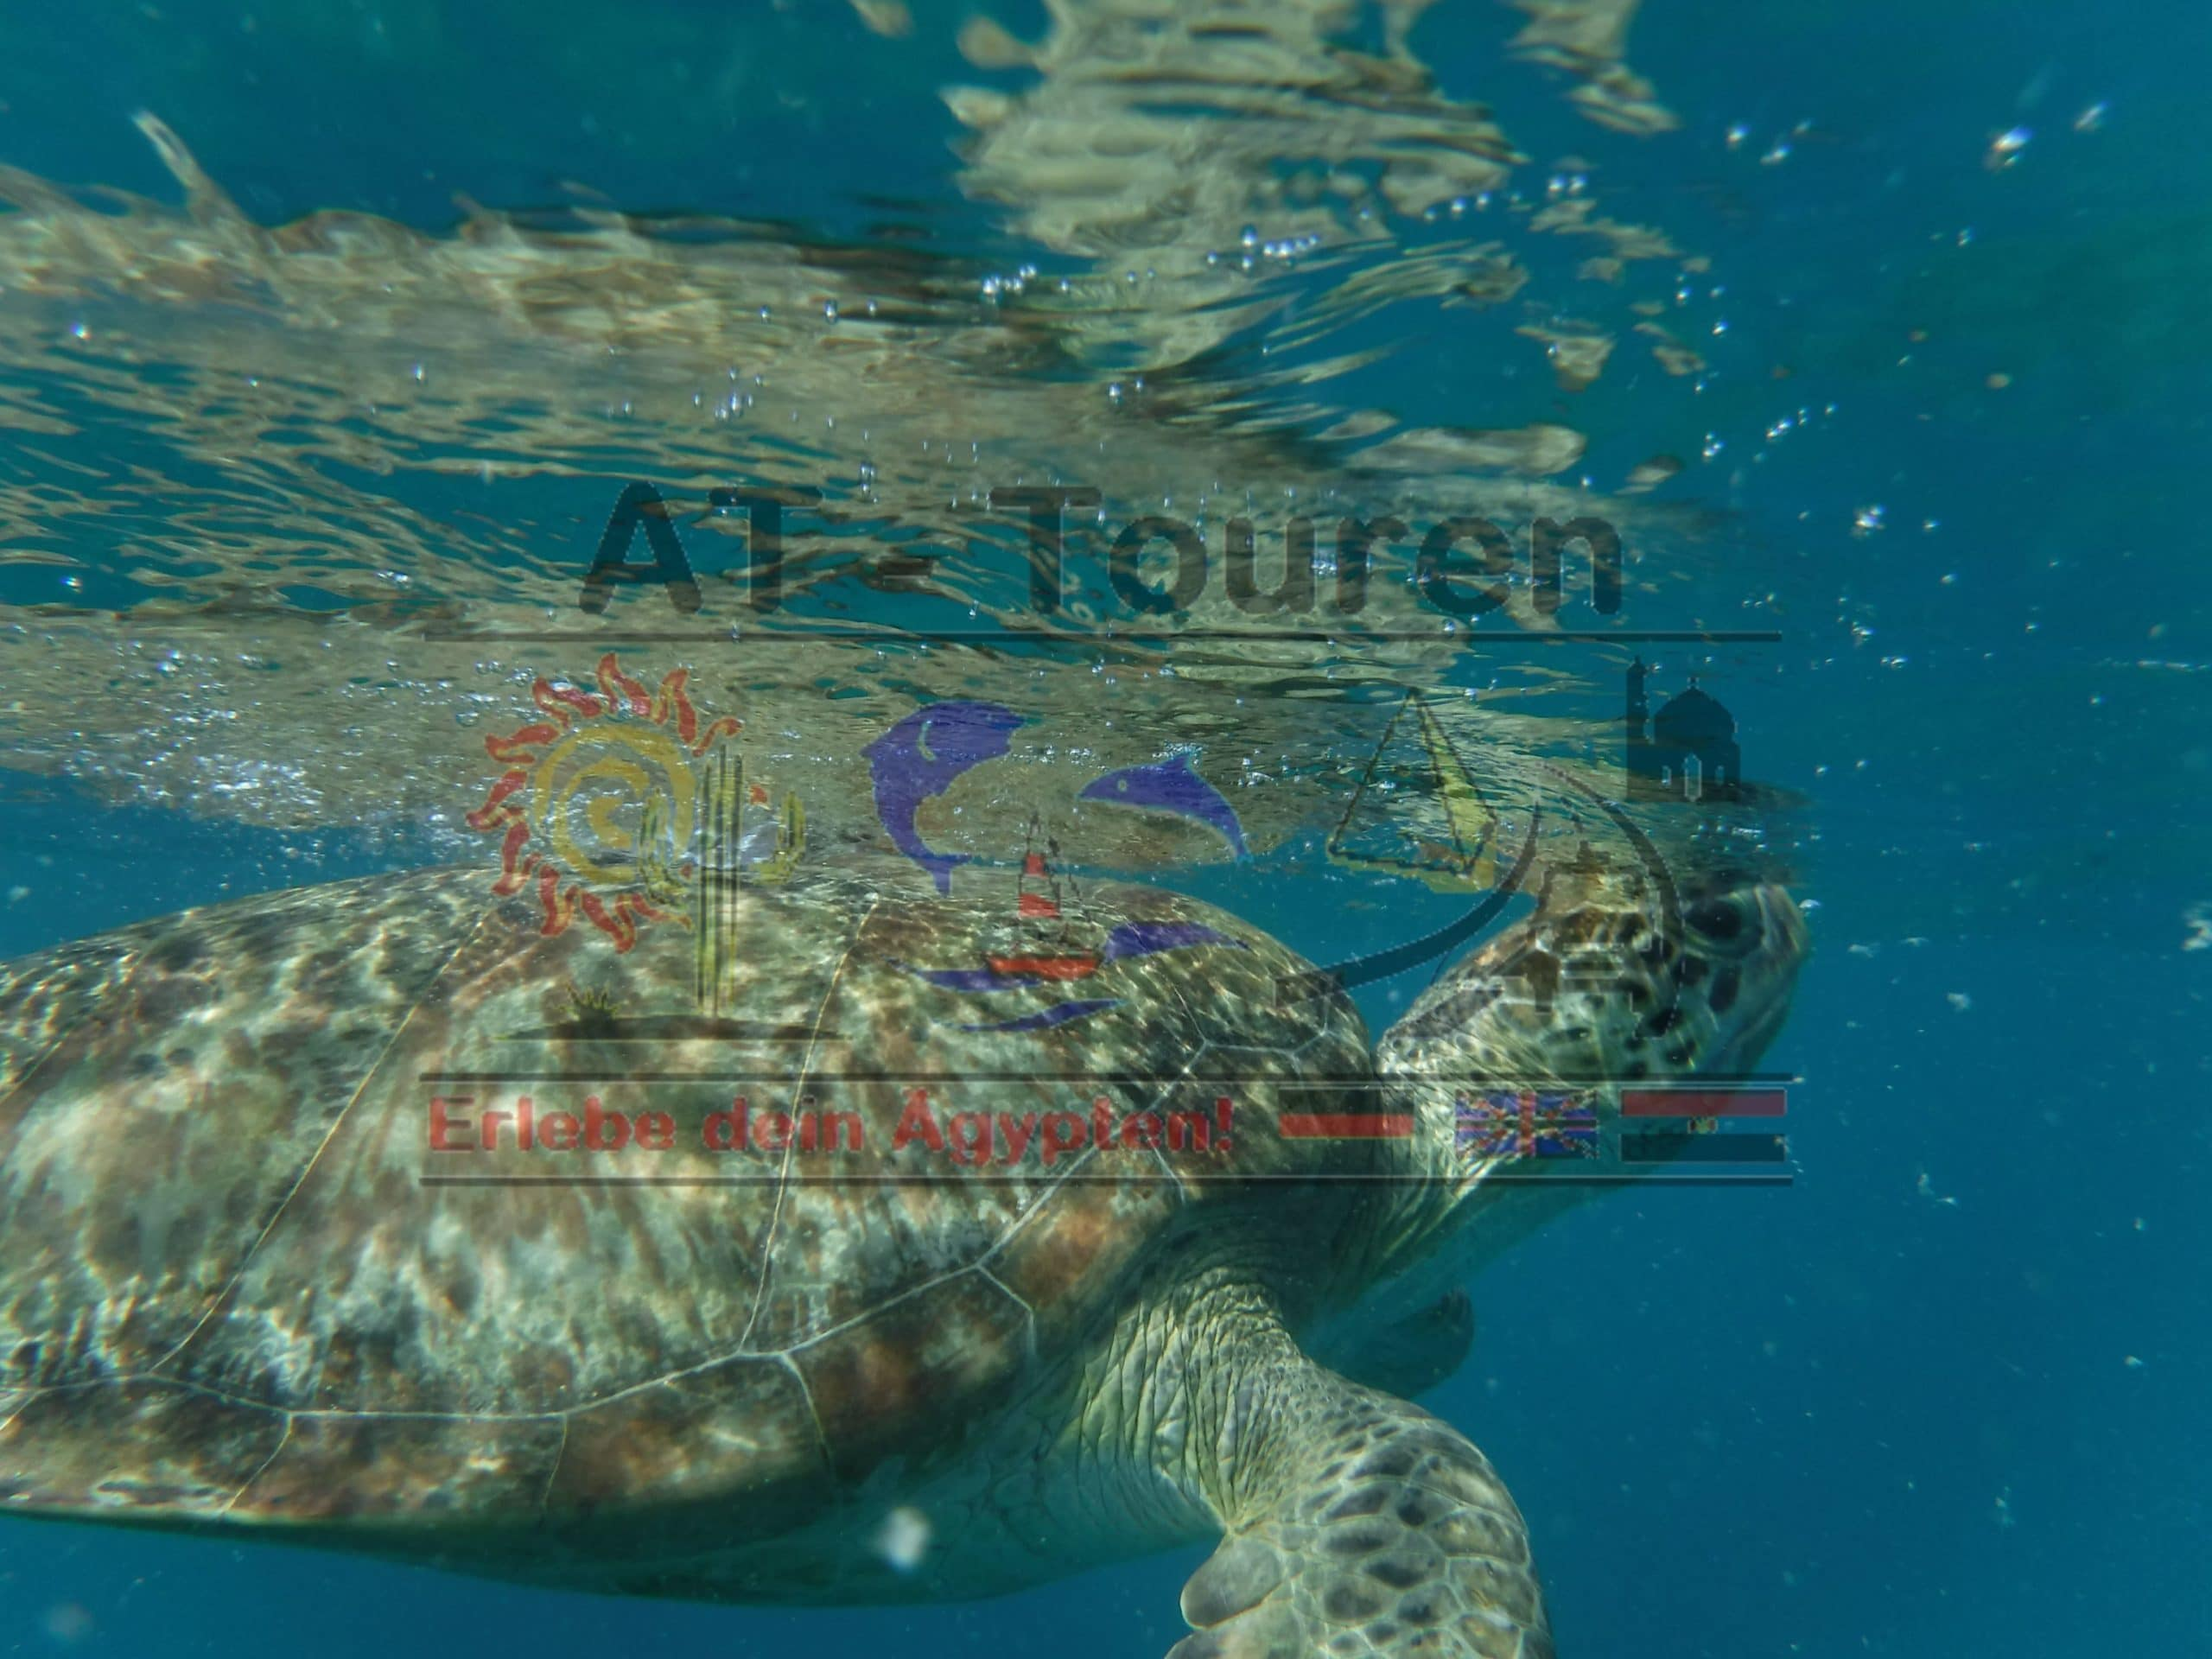 Marsa_Alam_Abu_dabbab_Schildkröten_Tour_AT_Touren_Hurghada_2__at-touren.de-min